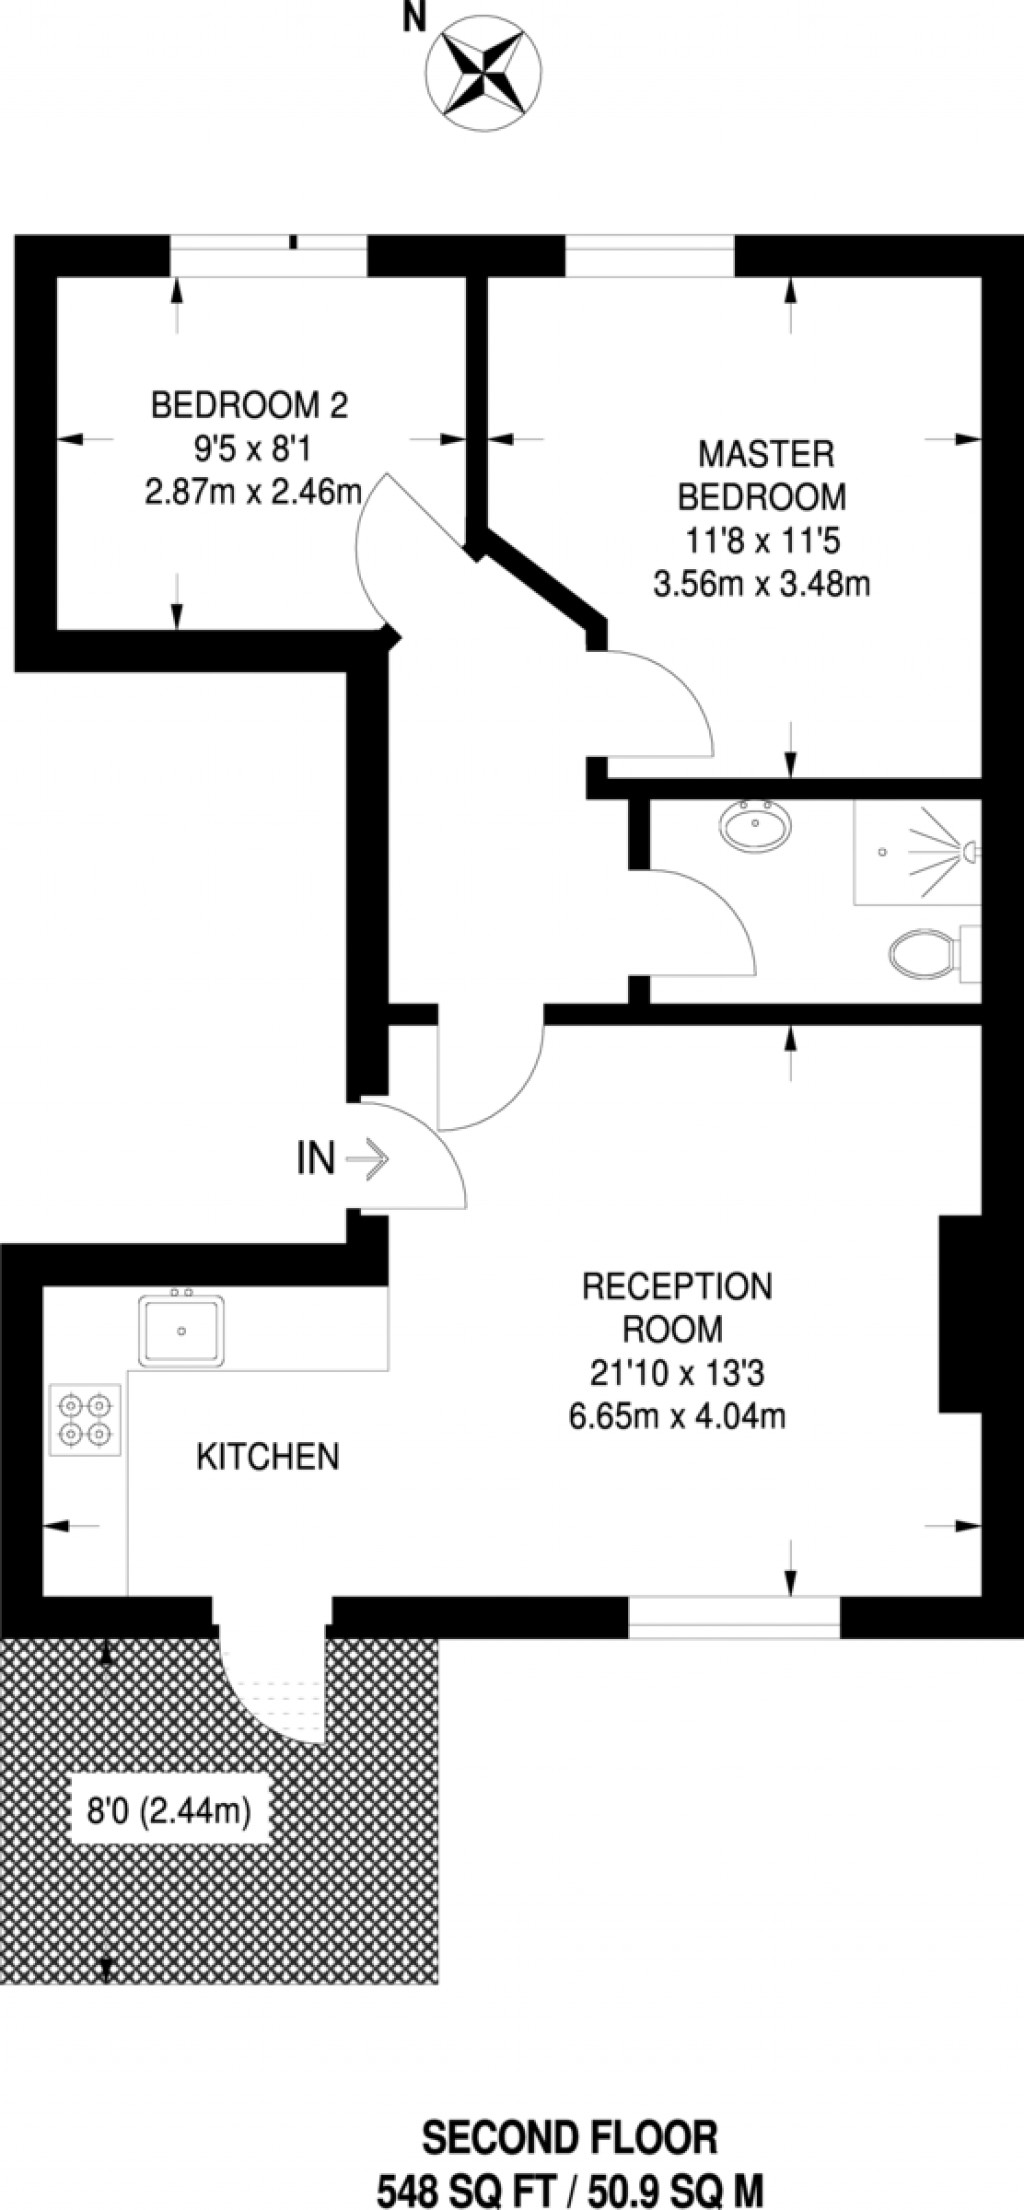 Floorplans For Caledonian Road, London